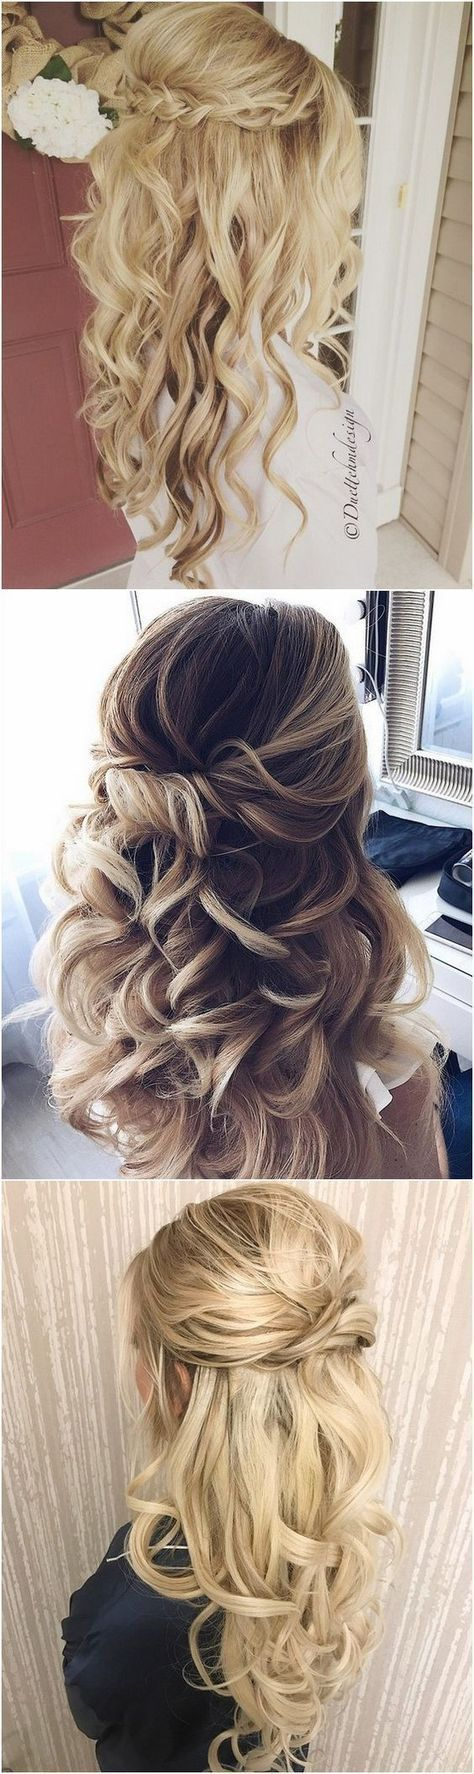 Top wedding hairstyles for trends my wedding ideas